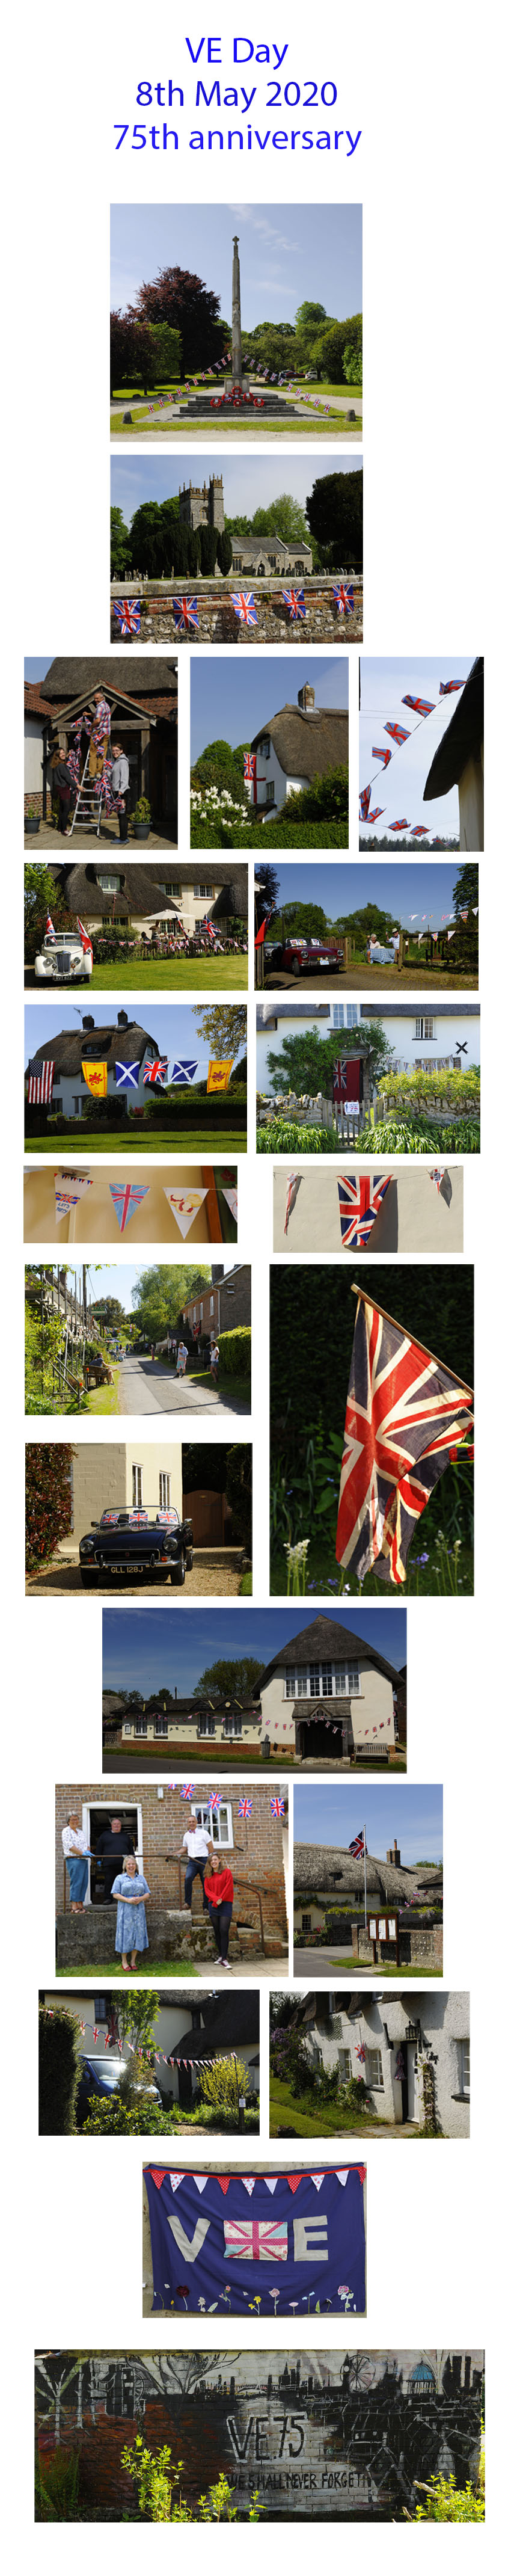 composite phot of village decked out for VE Day 75